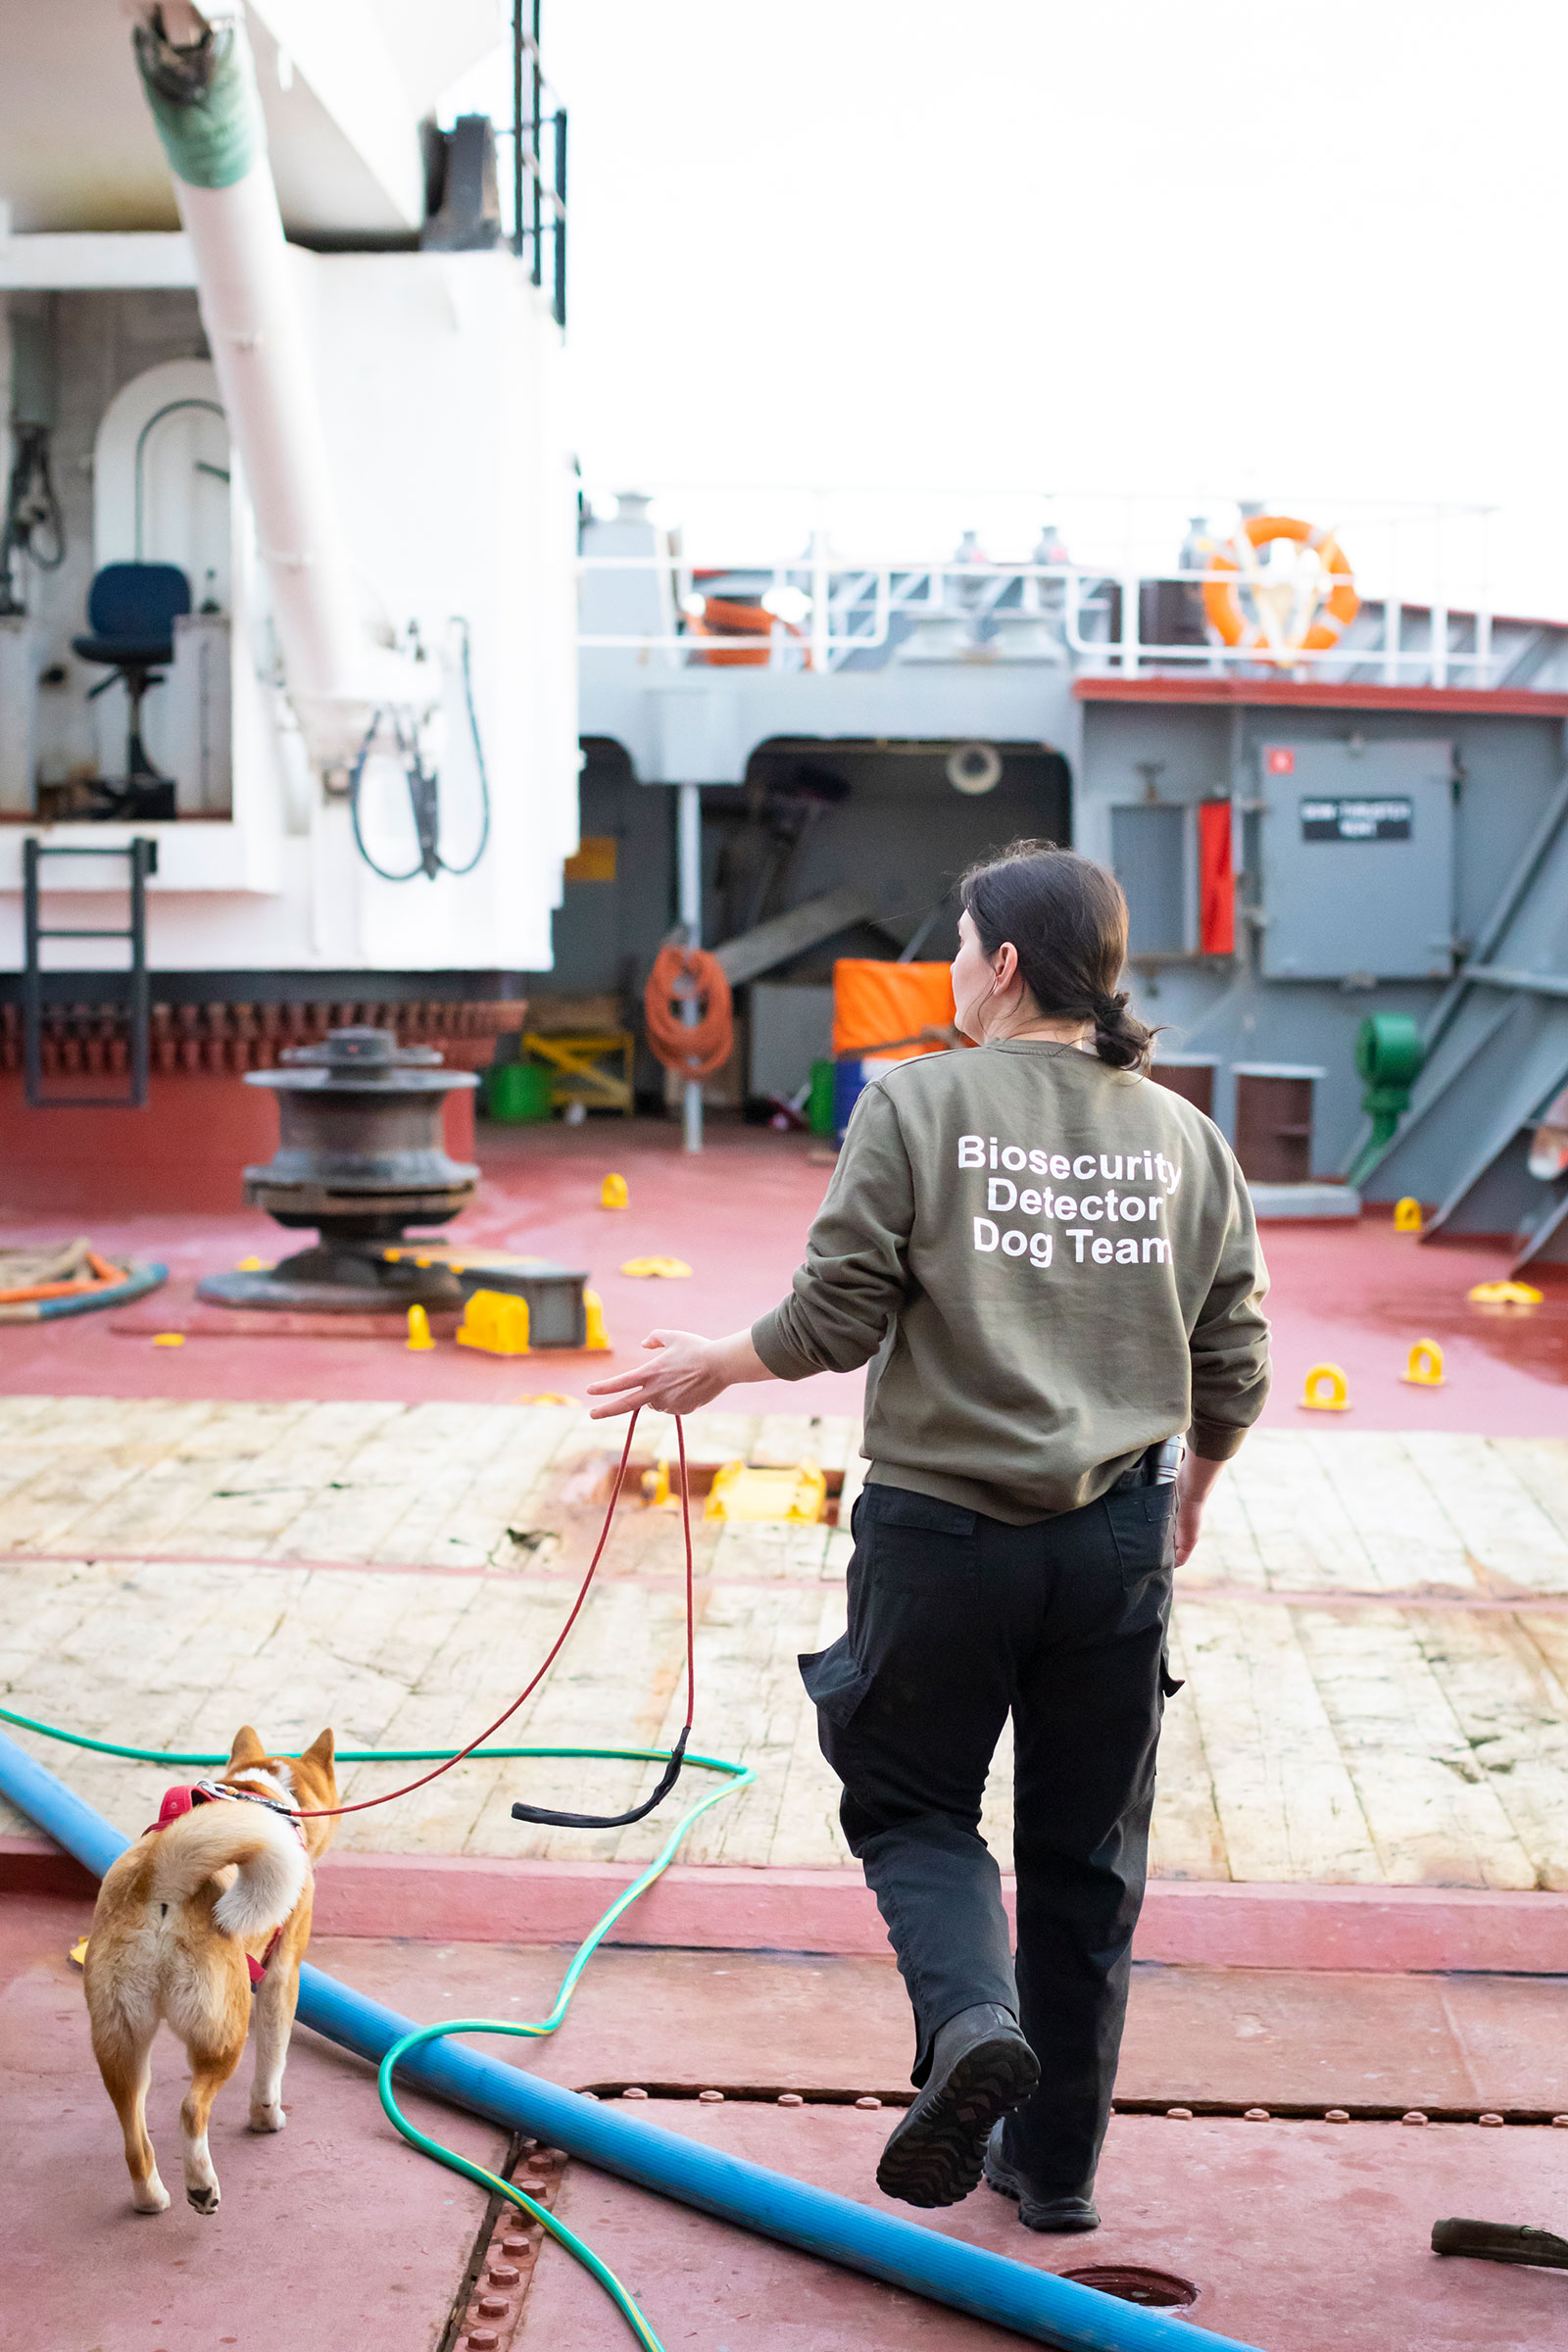 """A woman with dark hair, black pants, and a brown shirt that says """"biosecurity detector dog team"""" holds a red leash attached to a brown and white dog. They walk across the cluttered red deck of a ship."""